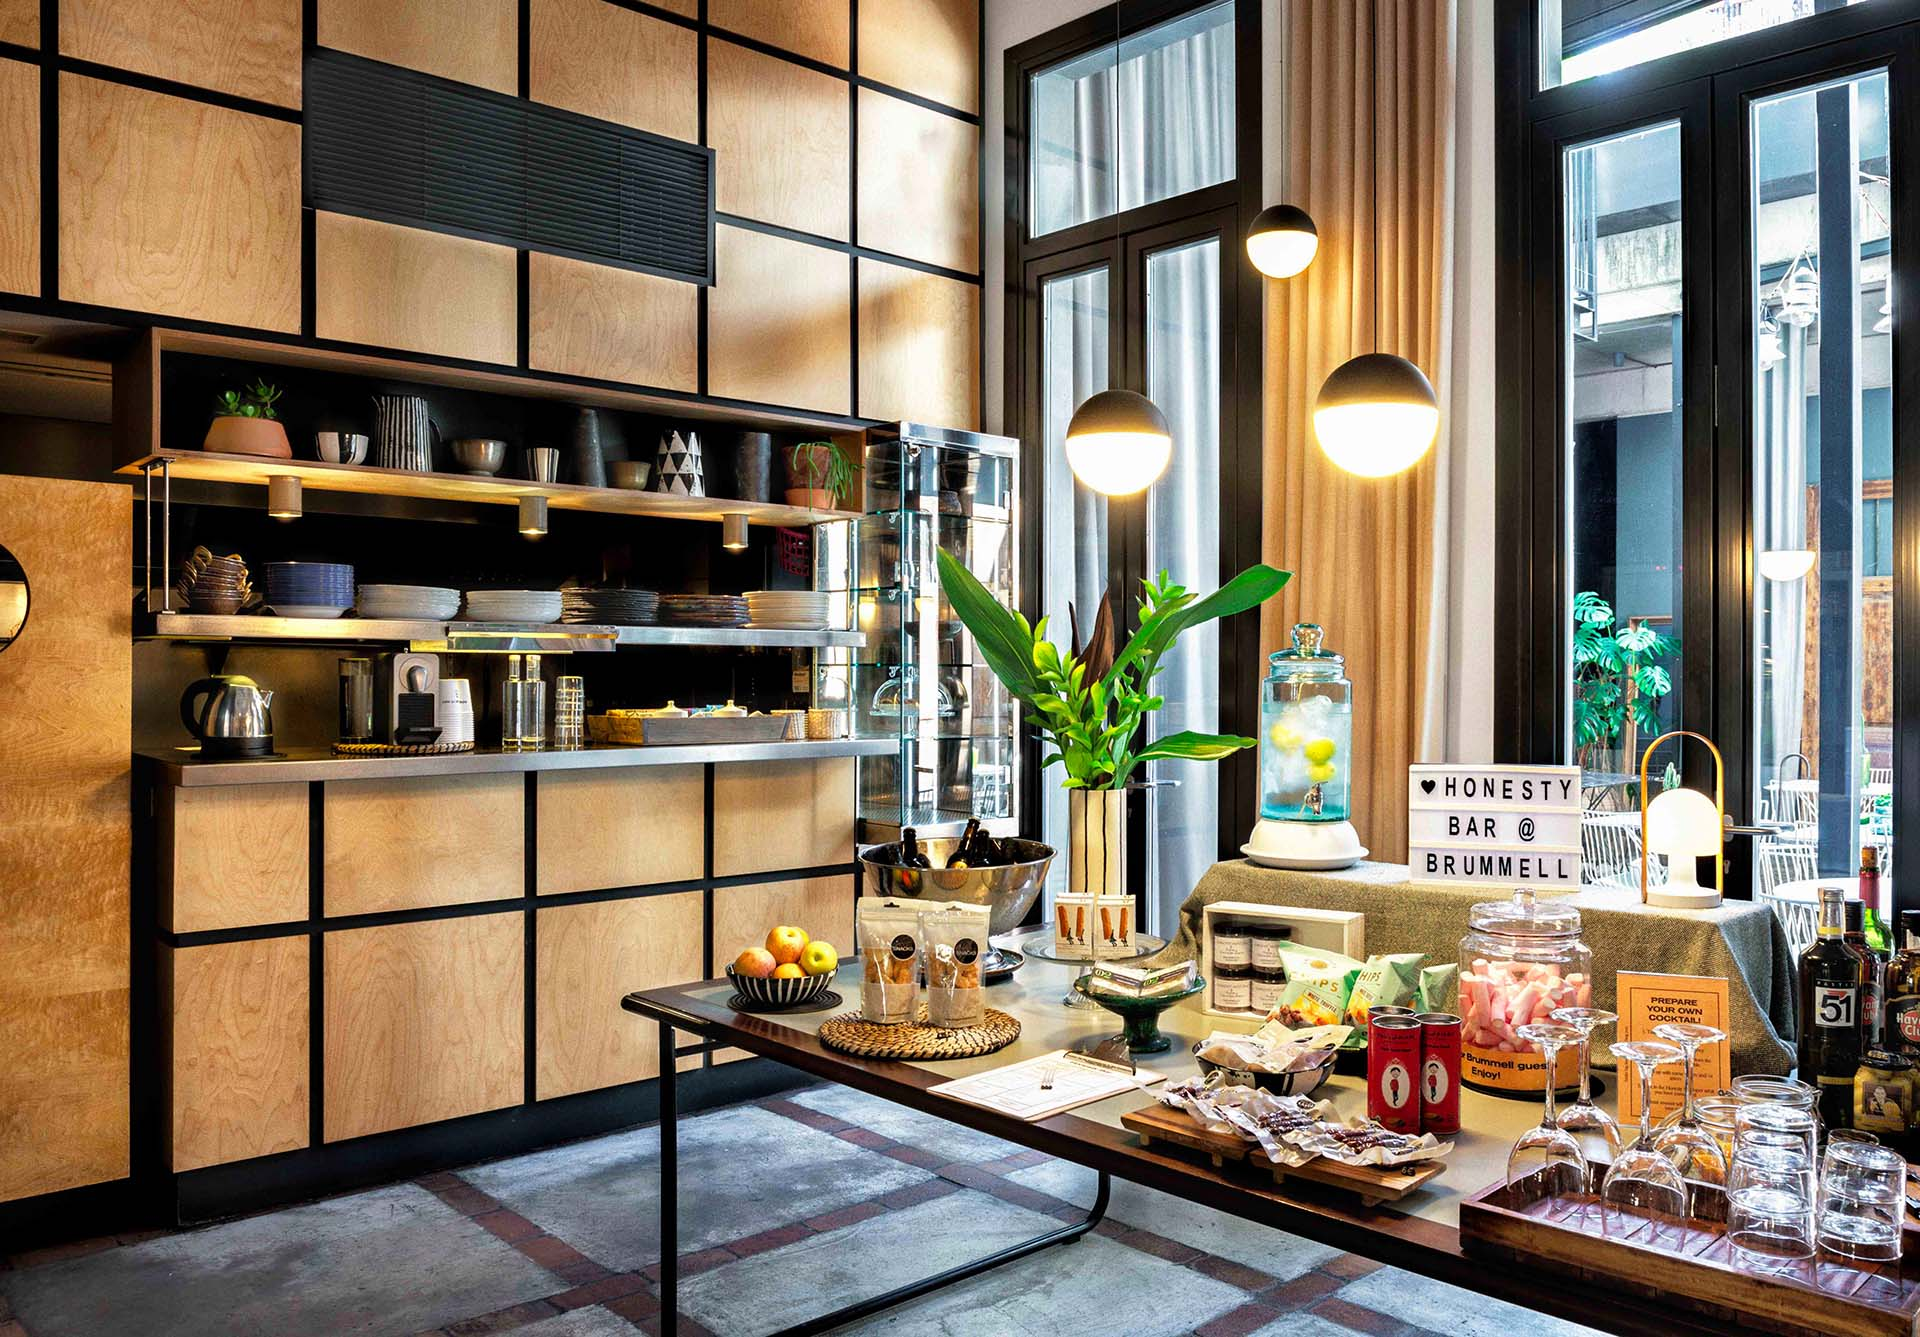 Hotel Mit Charme In Barcelona Hotel Brummell